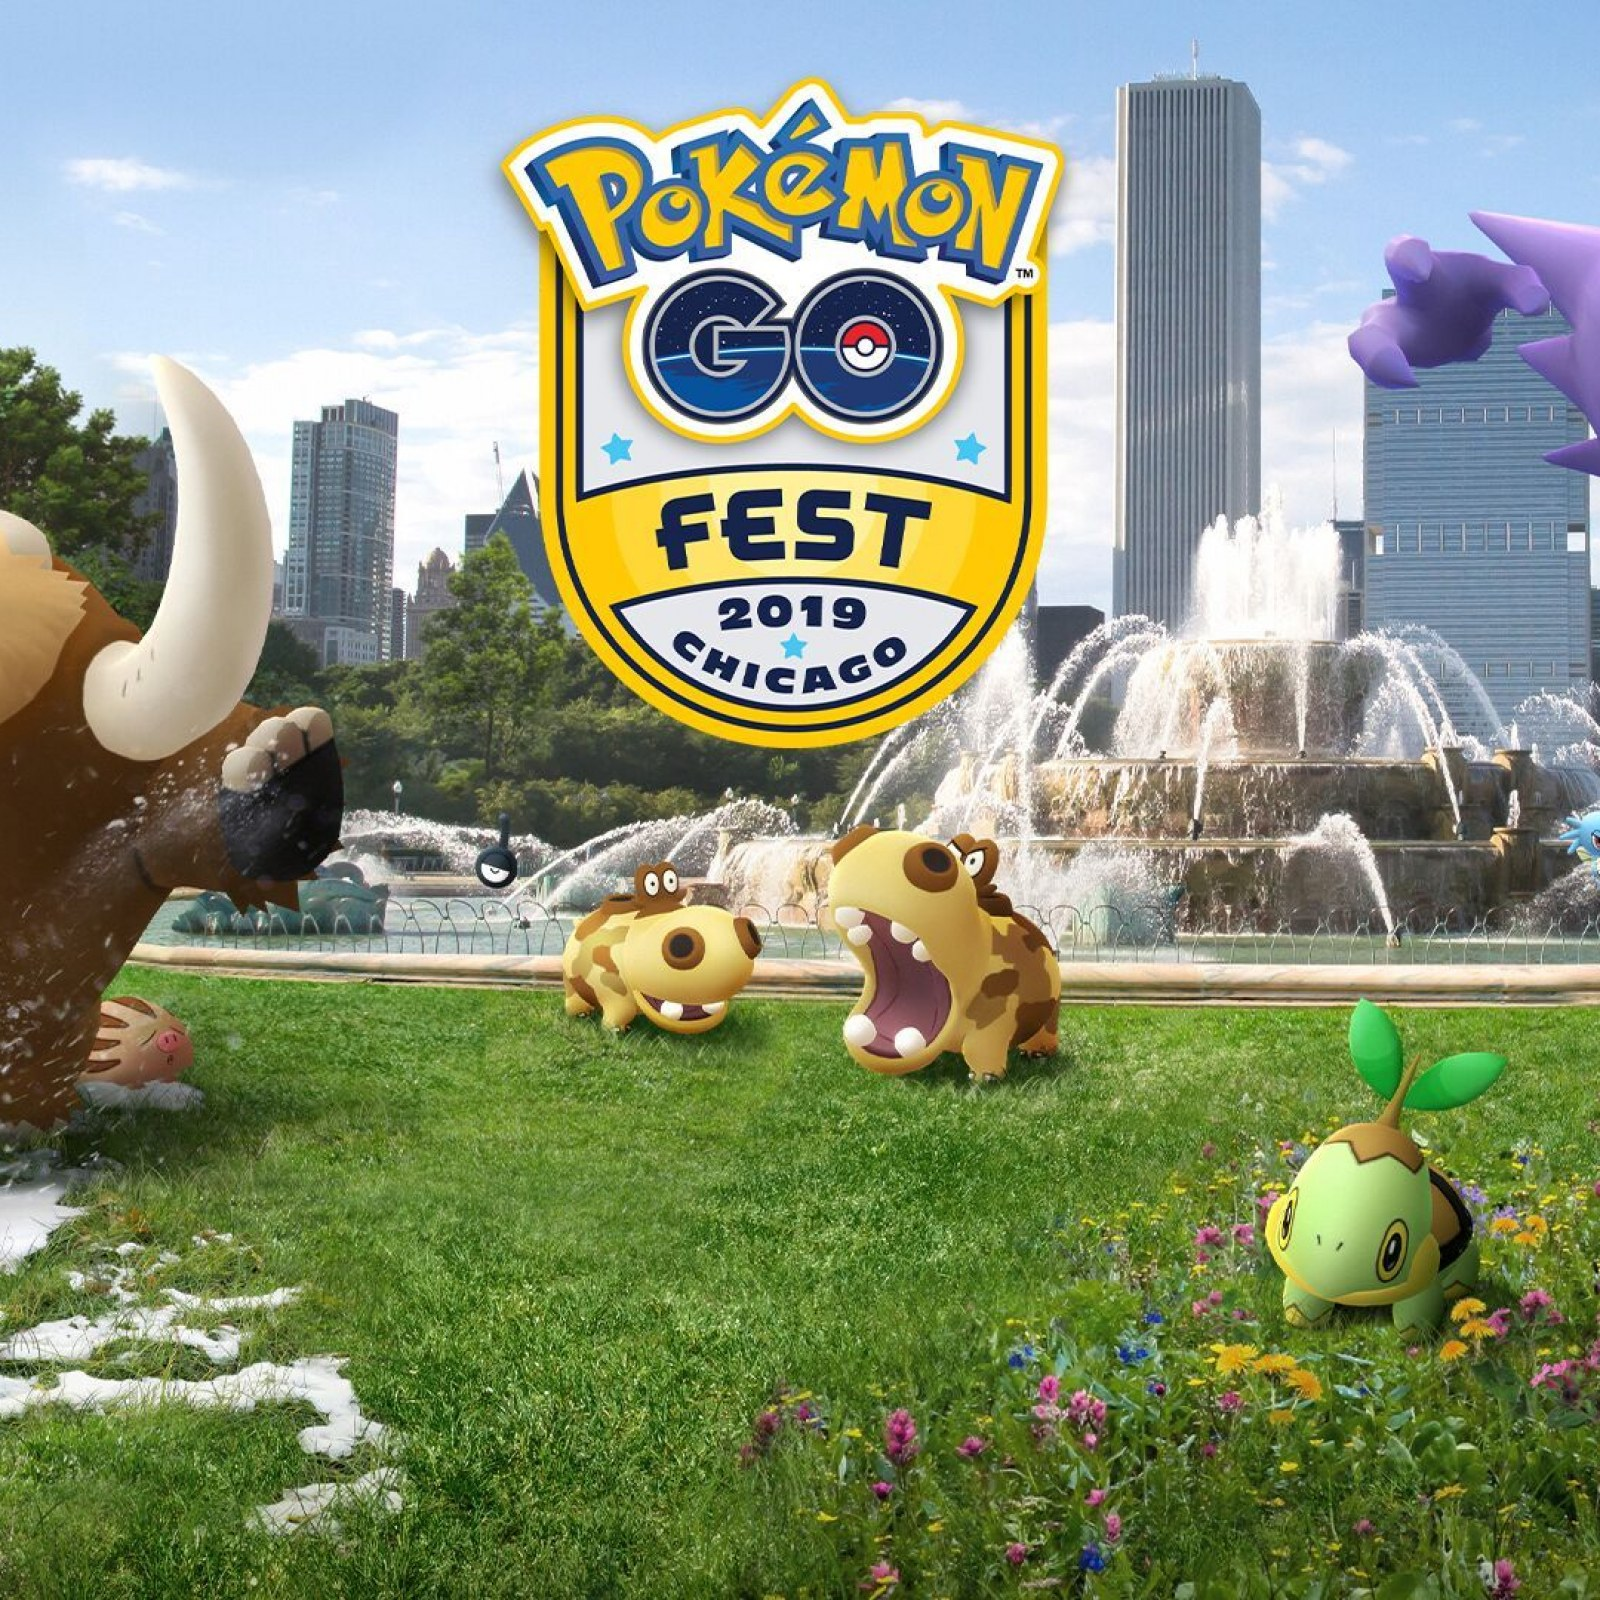 Pokémon Go' Fest Returns to Chicago as Part of Game's Summer